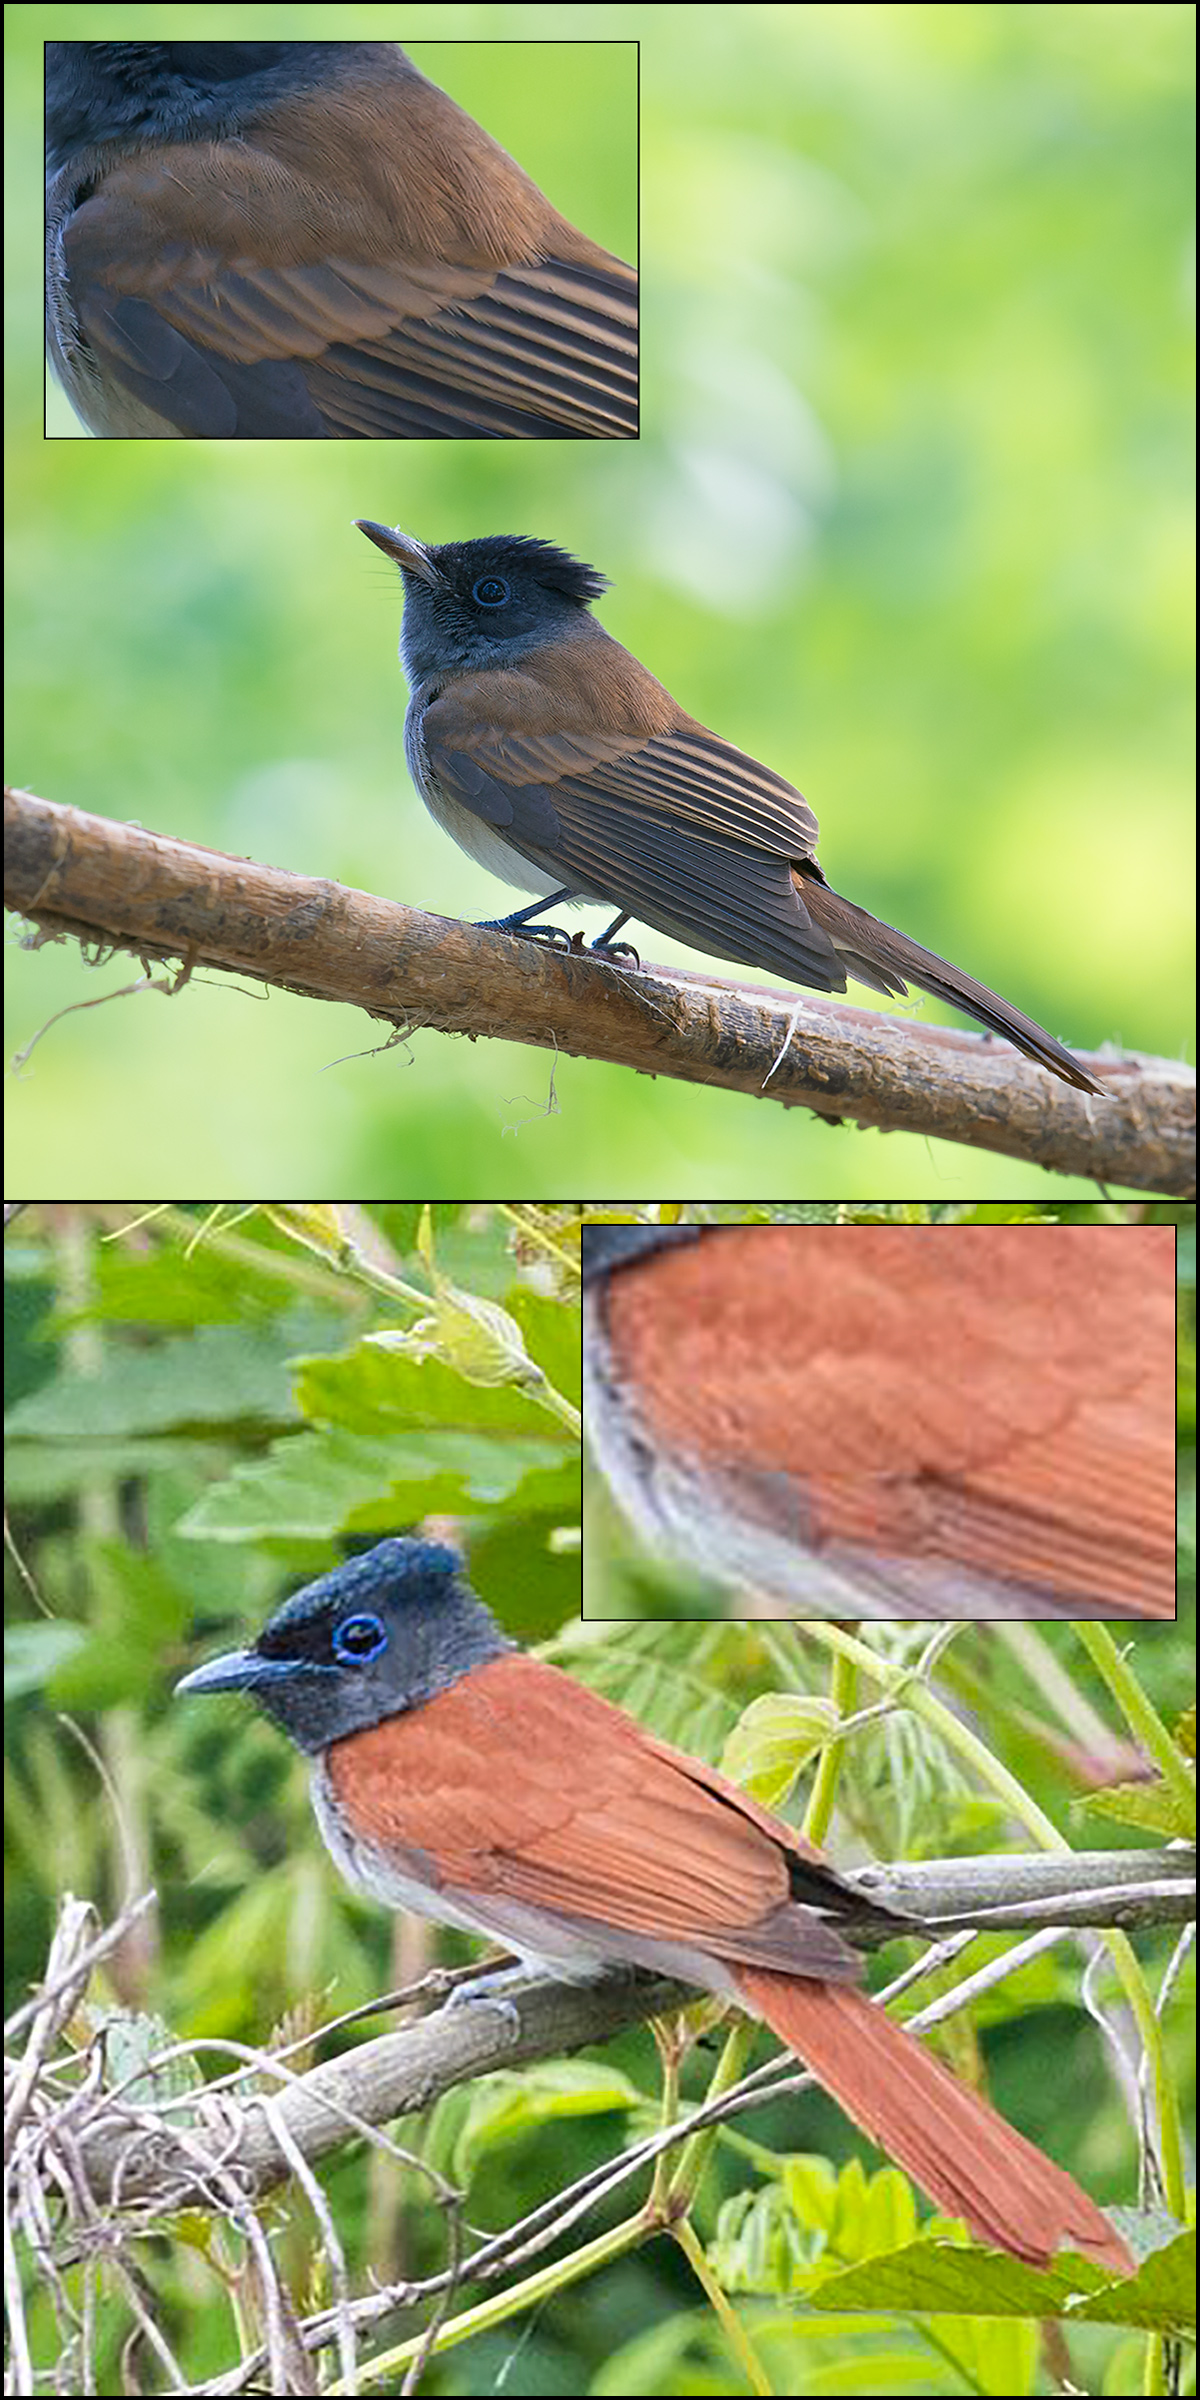 Top: Japanese Paradise Flycatcher (Craig Brelsford). Bottom: Amur Paradise Flycatcher (Kai Pflug).